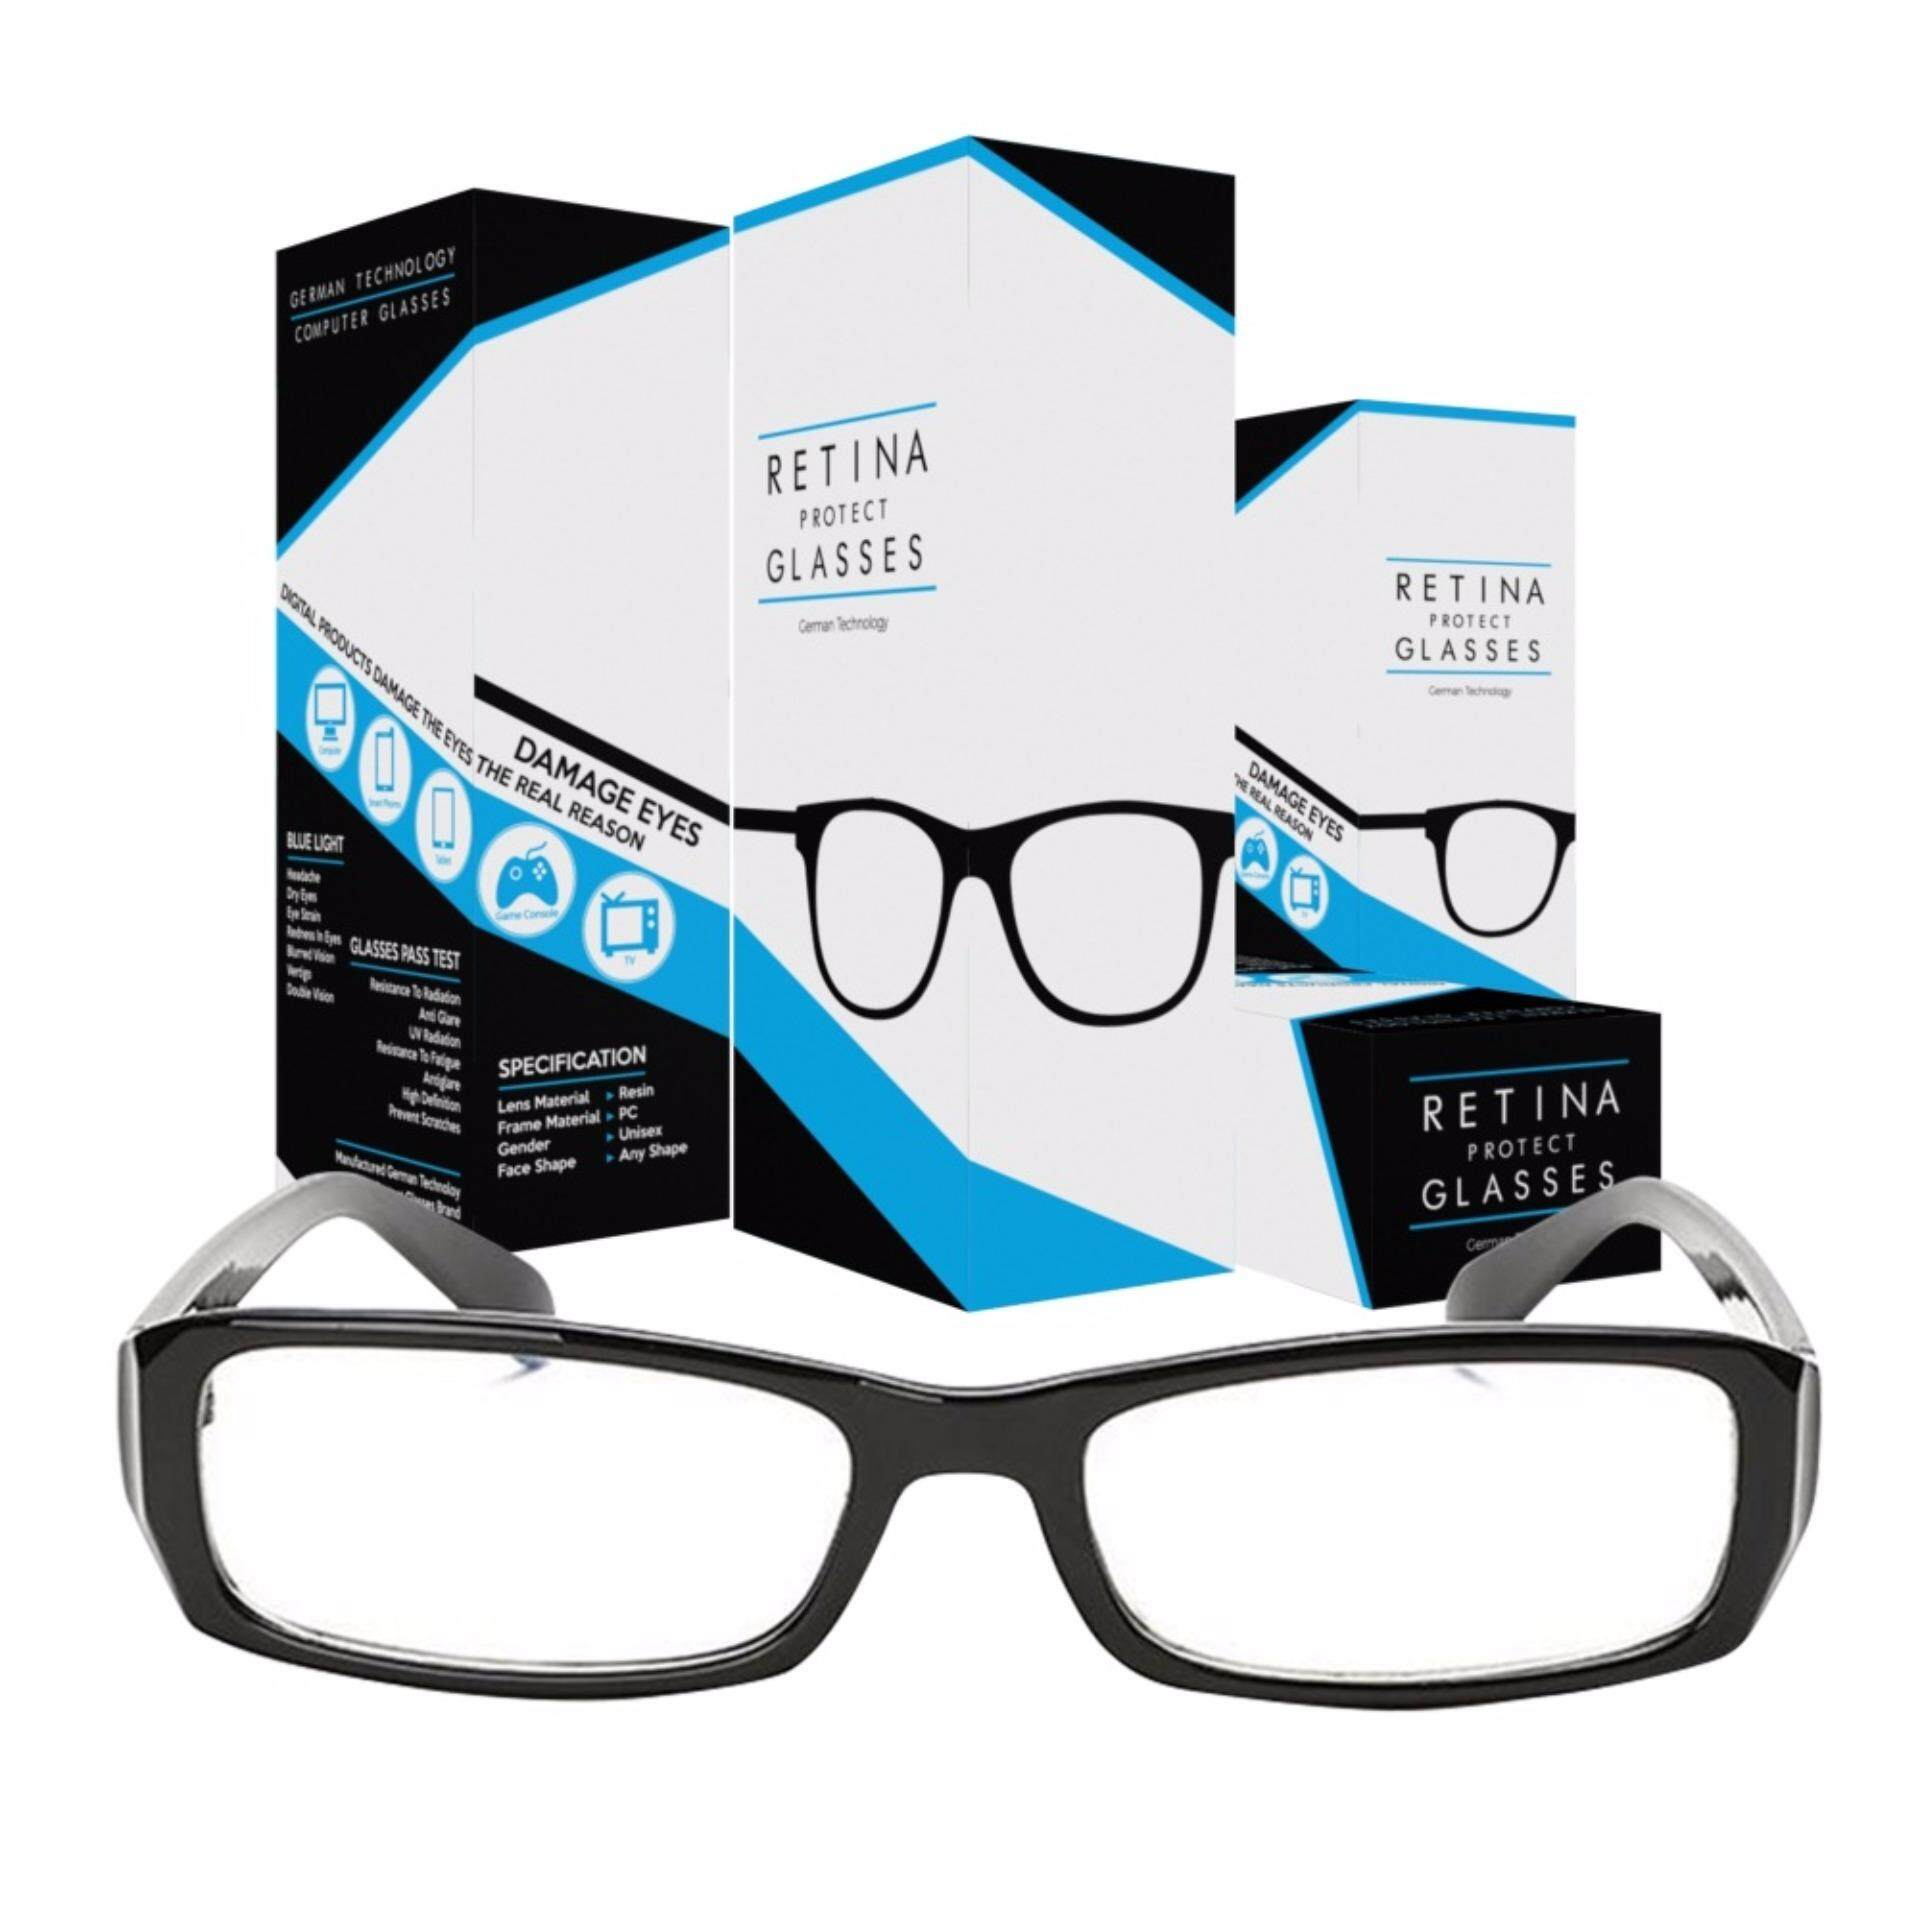 Retina Protect Glasses